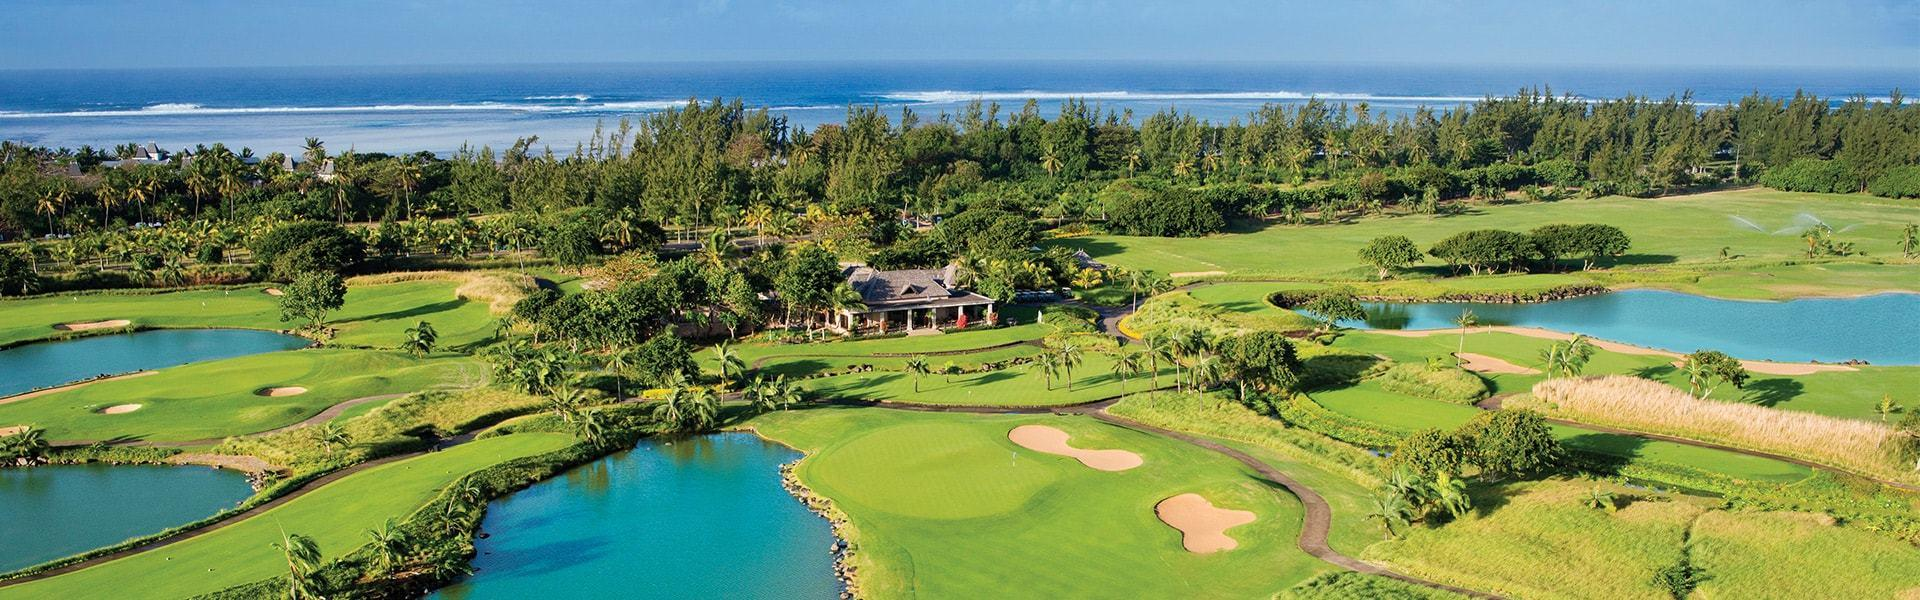 Heritage Resorts - le paradis du golfeur a maurice